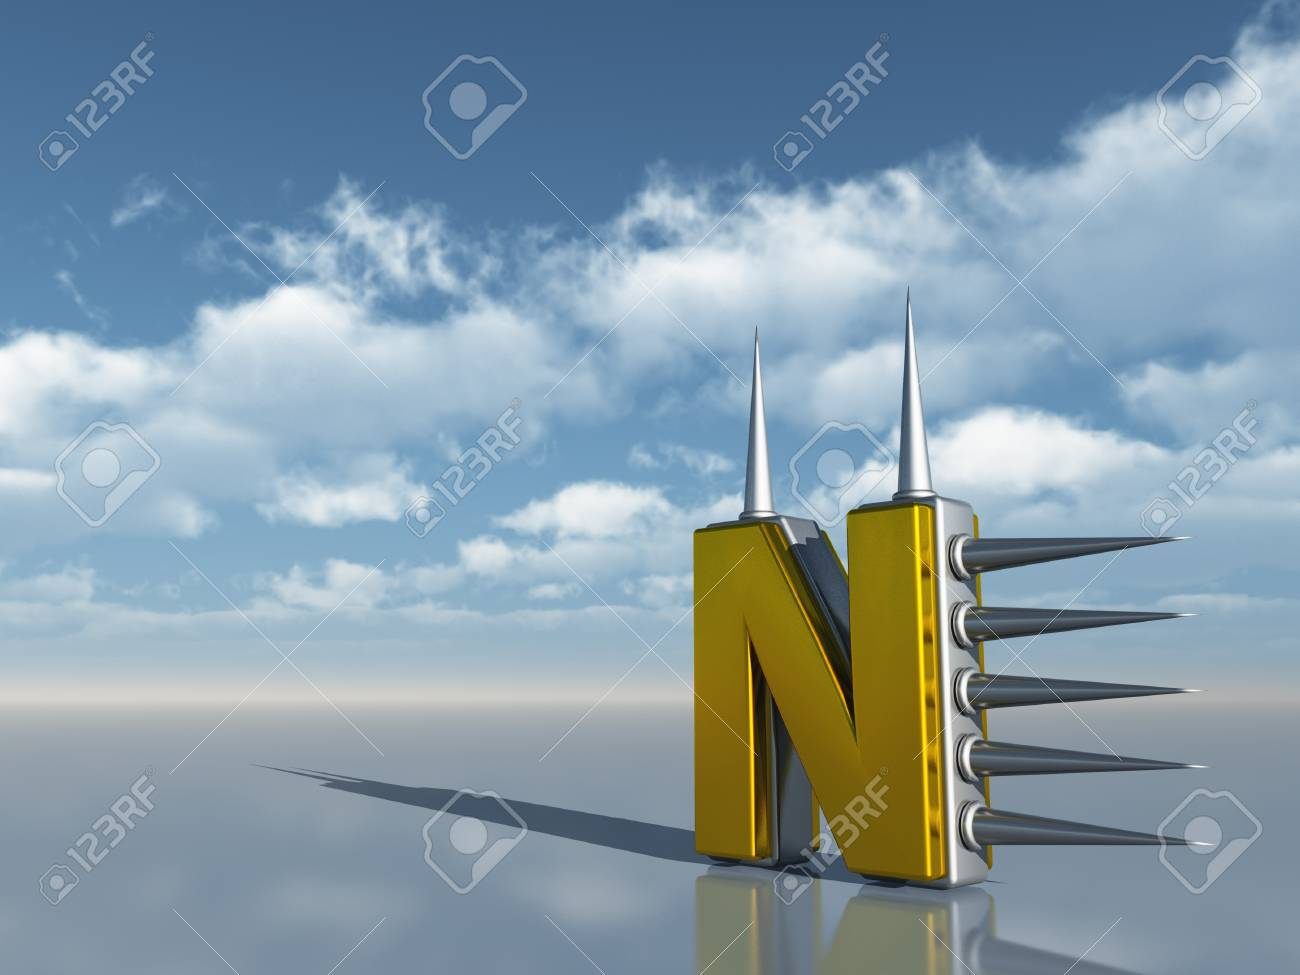 letter n with metal prickles under cloudy blue sky - 3d illustration Stock Illustration - 16606485